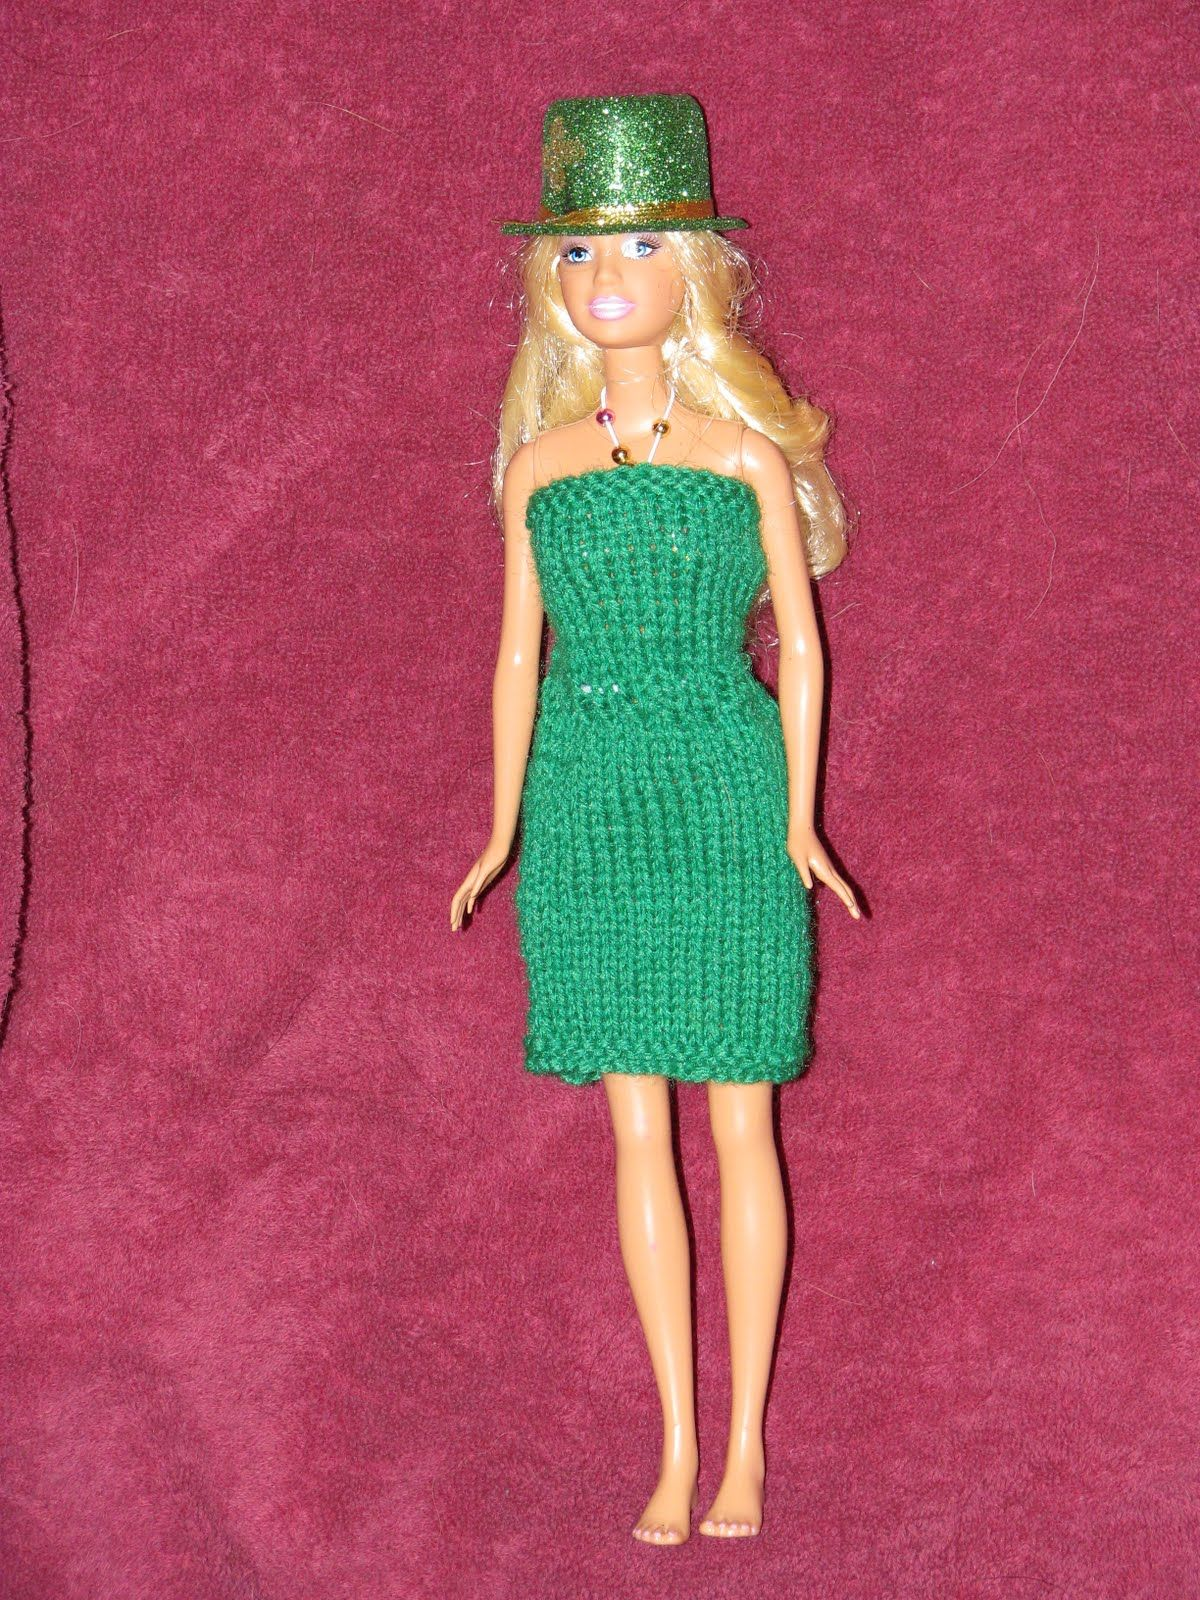 30 Free Crochet Patterns for Barbie Doll Clothes - Associated ...